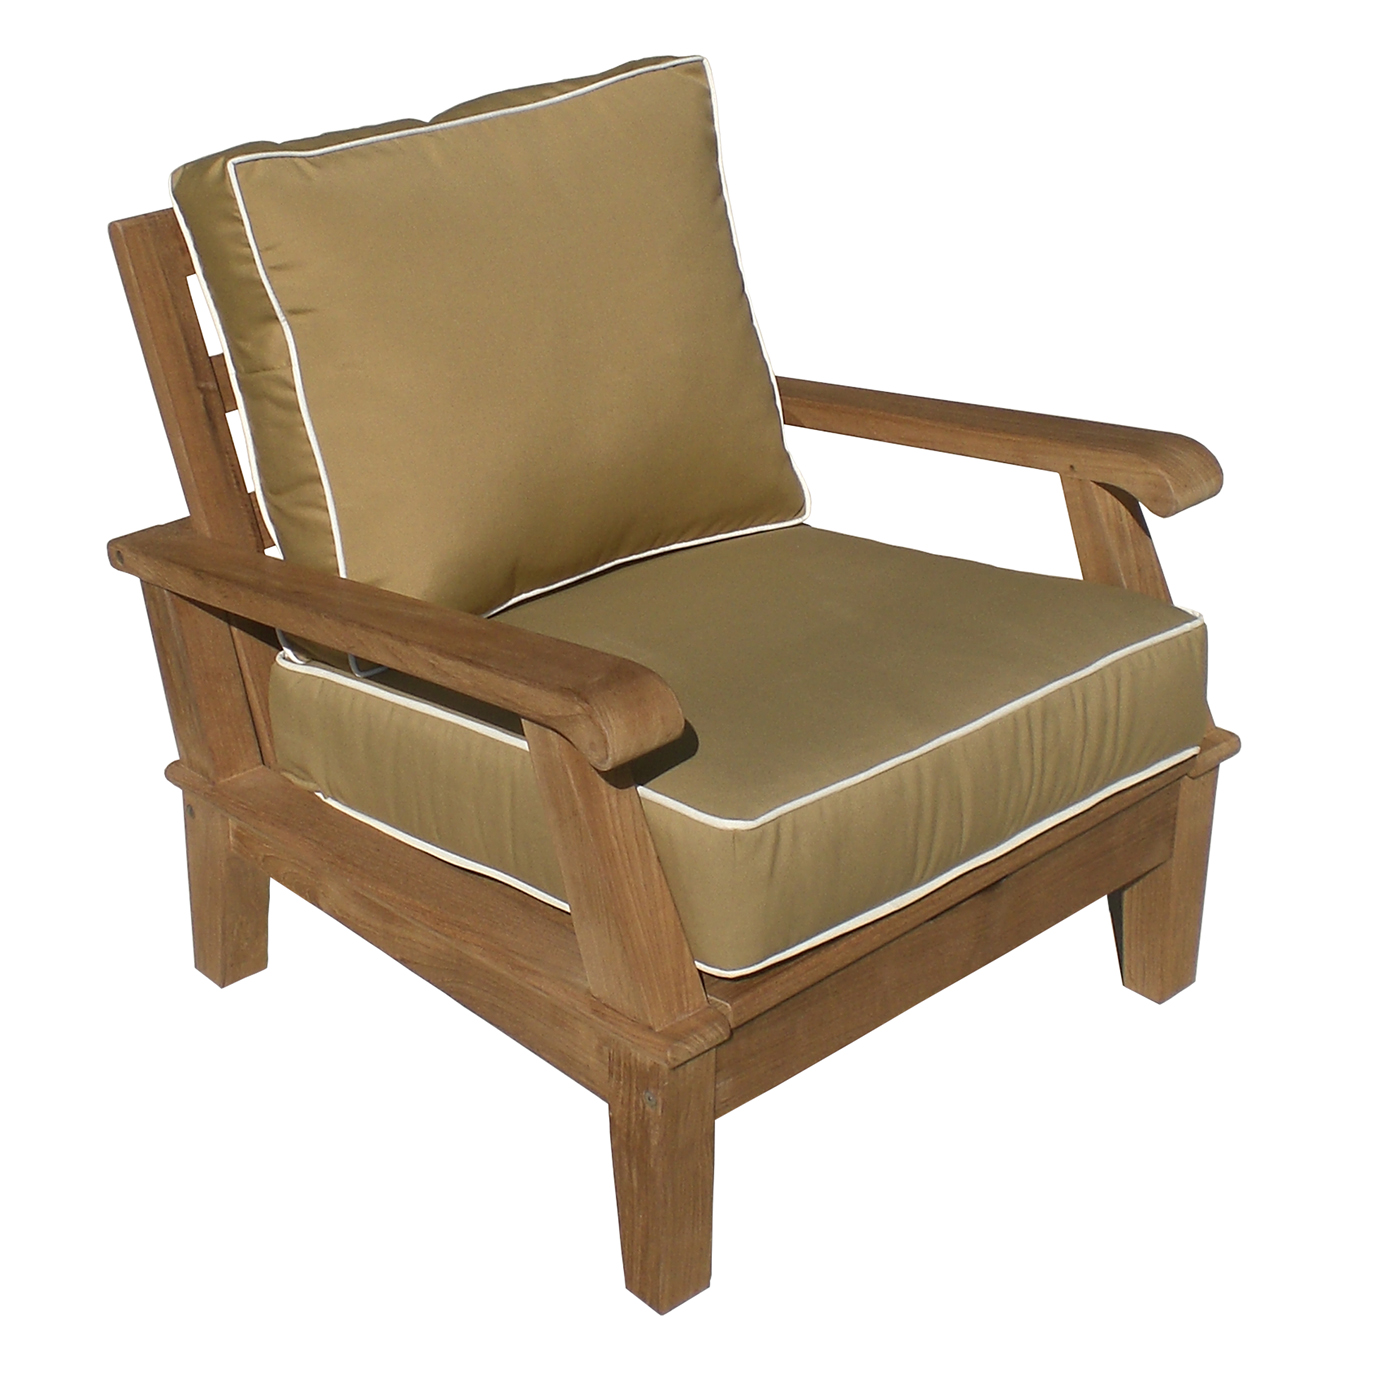 Image of: Teak Lounge Chair Image